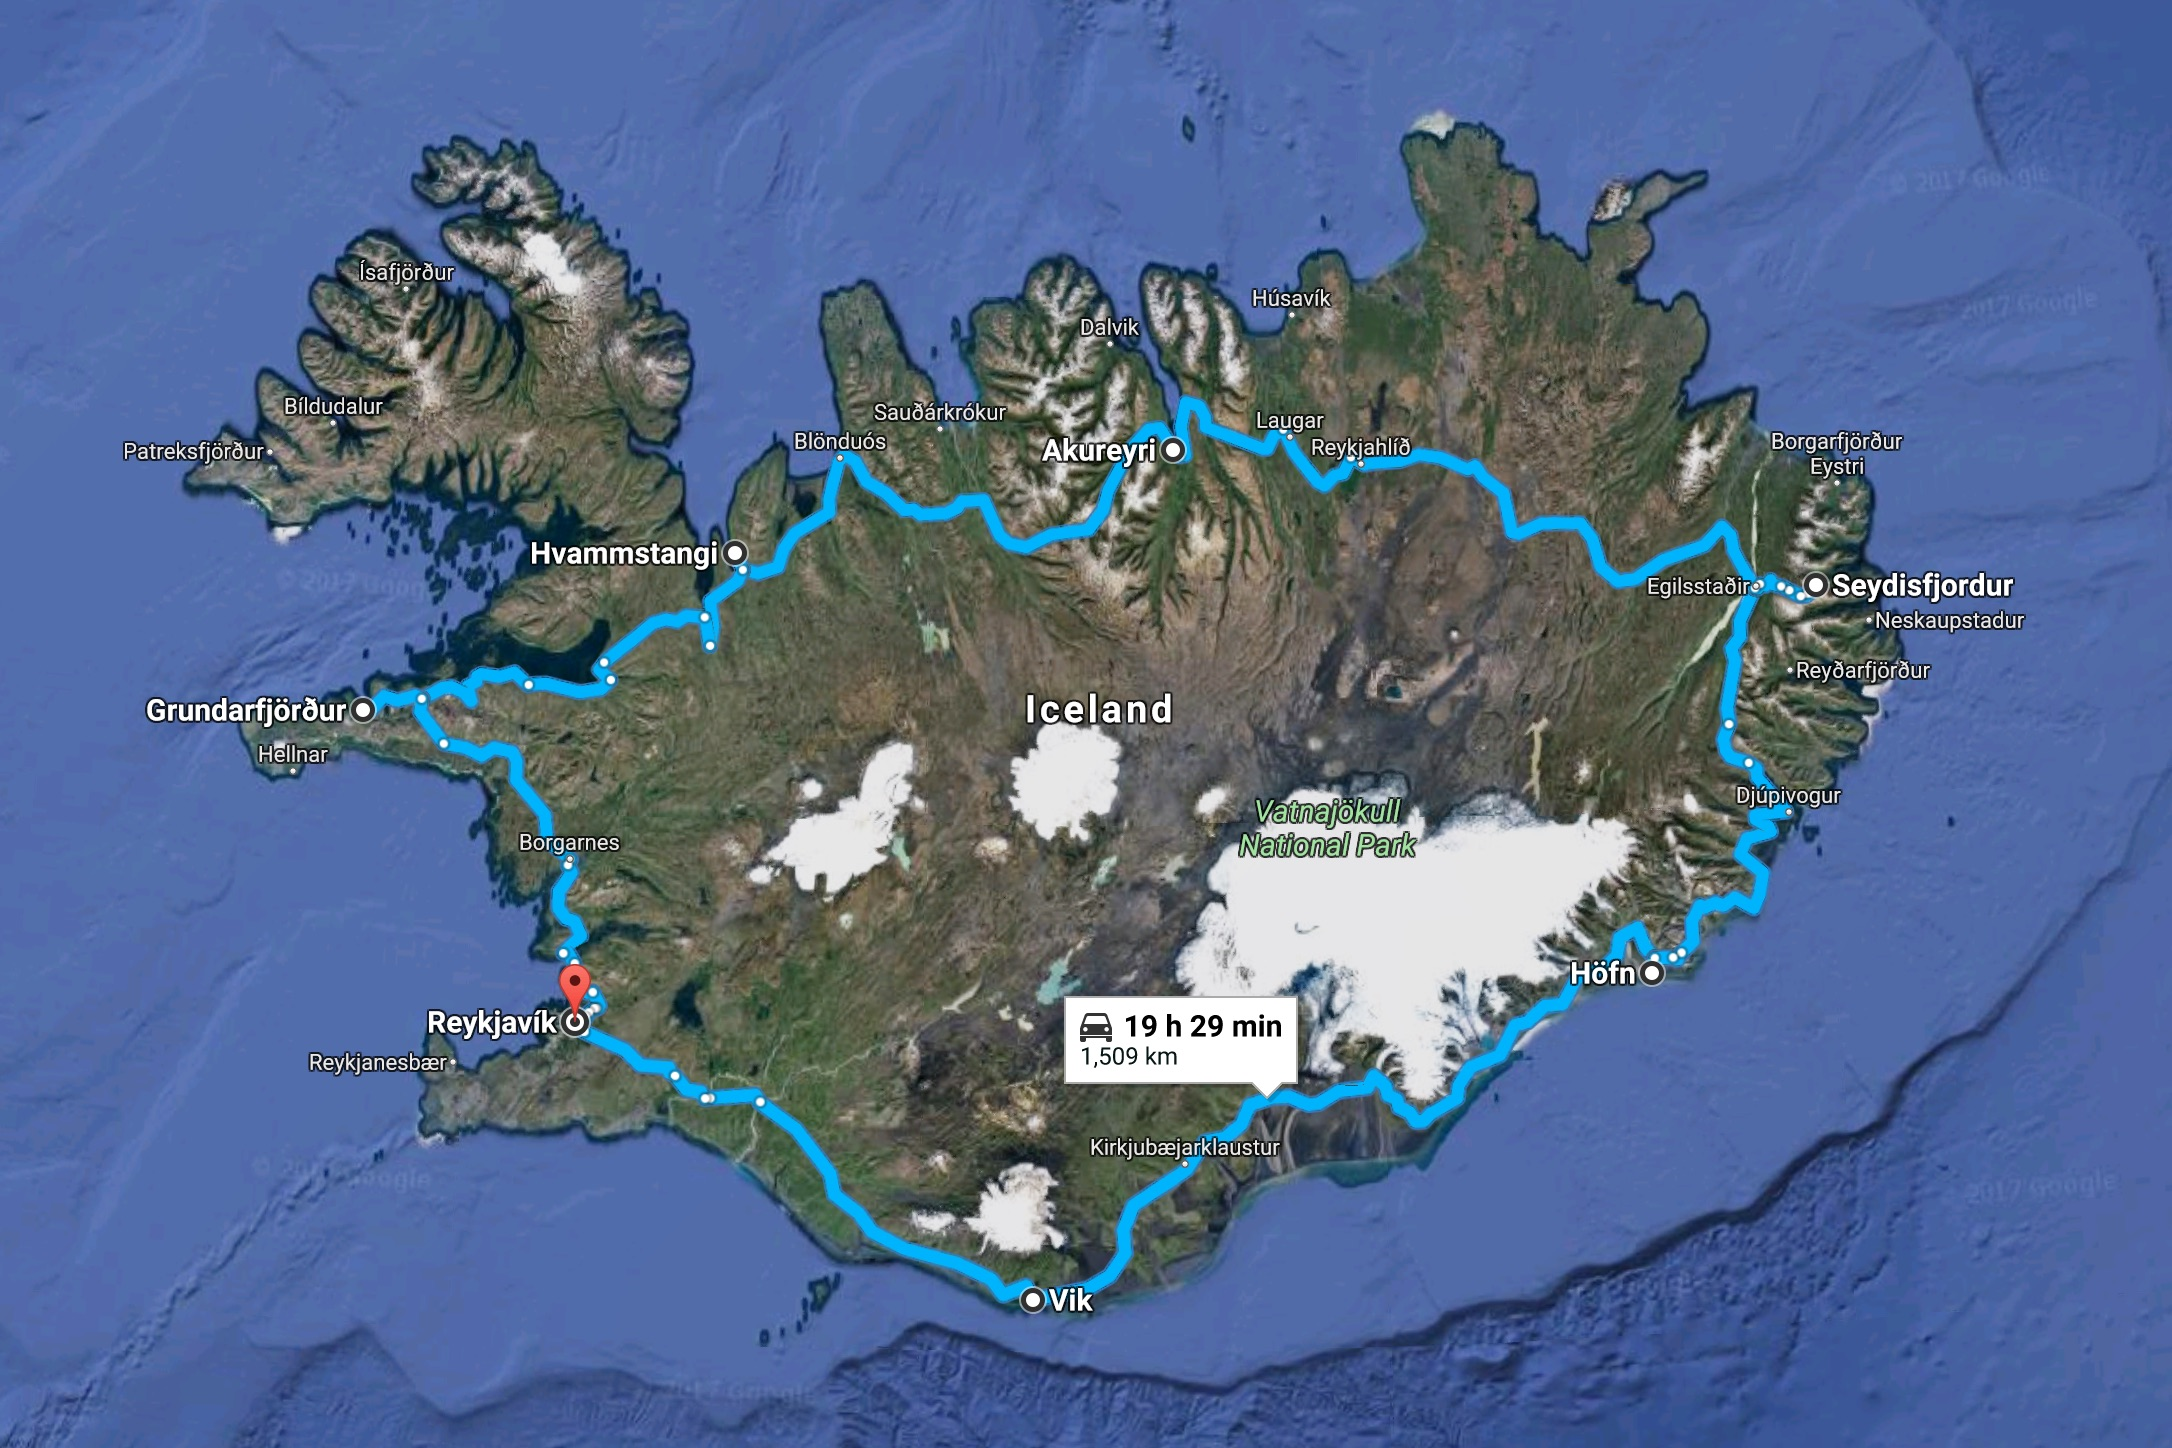 Our route around Iceland